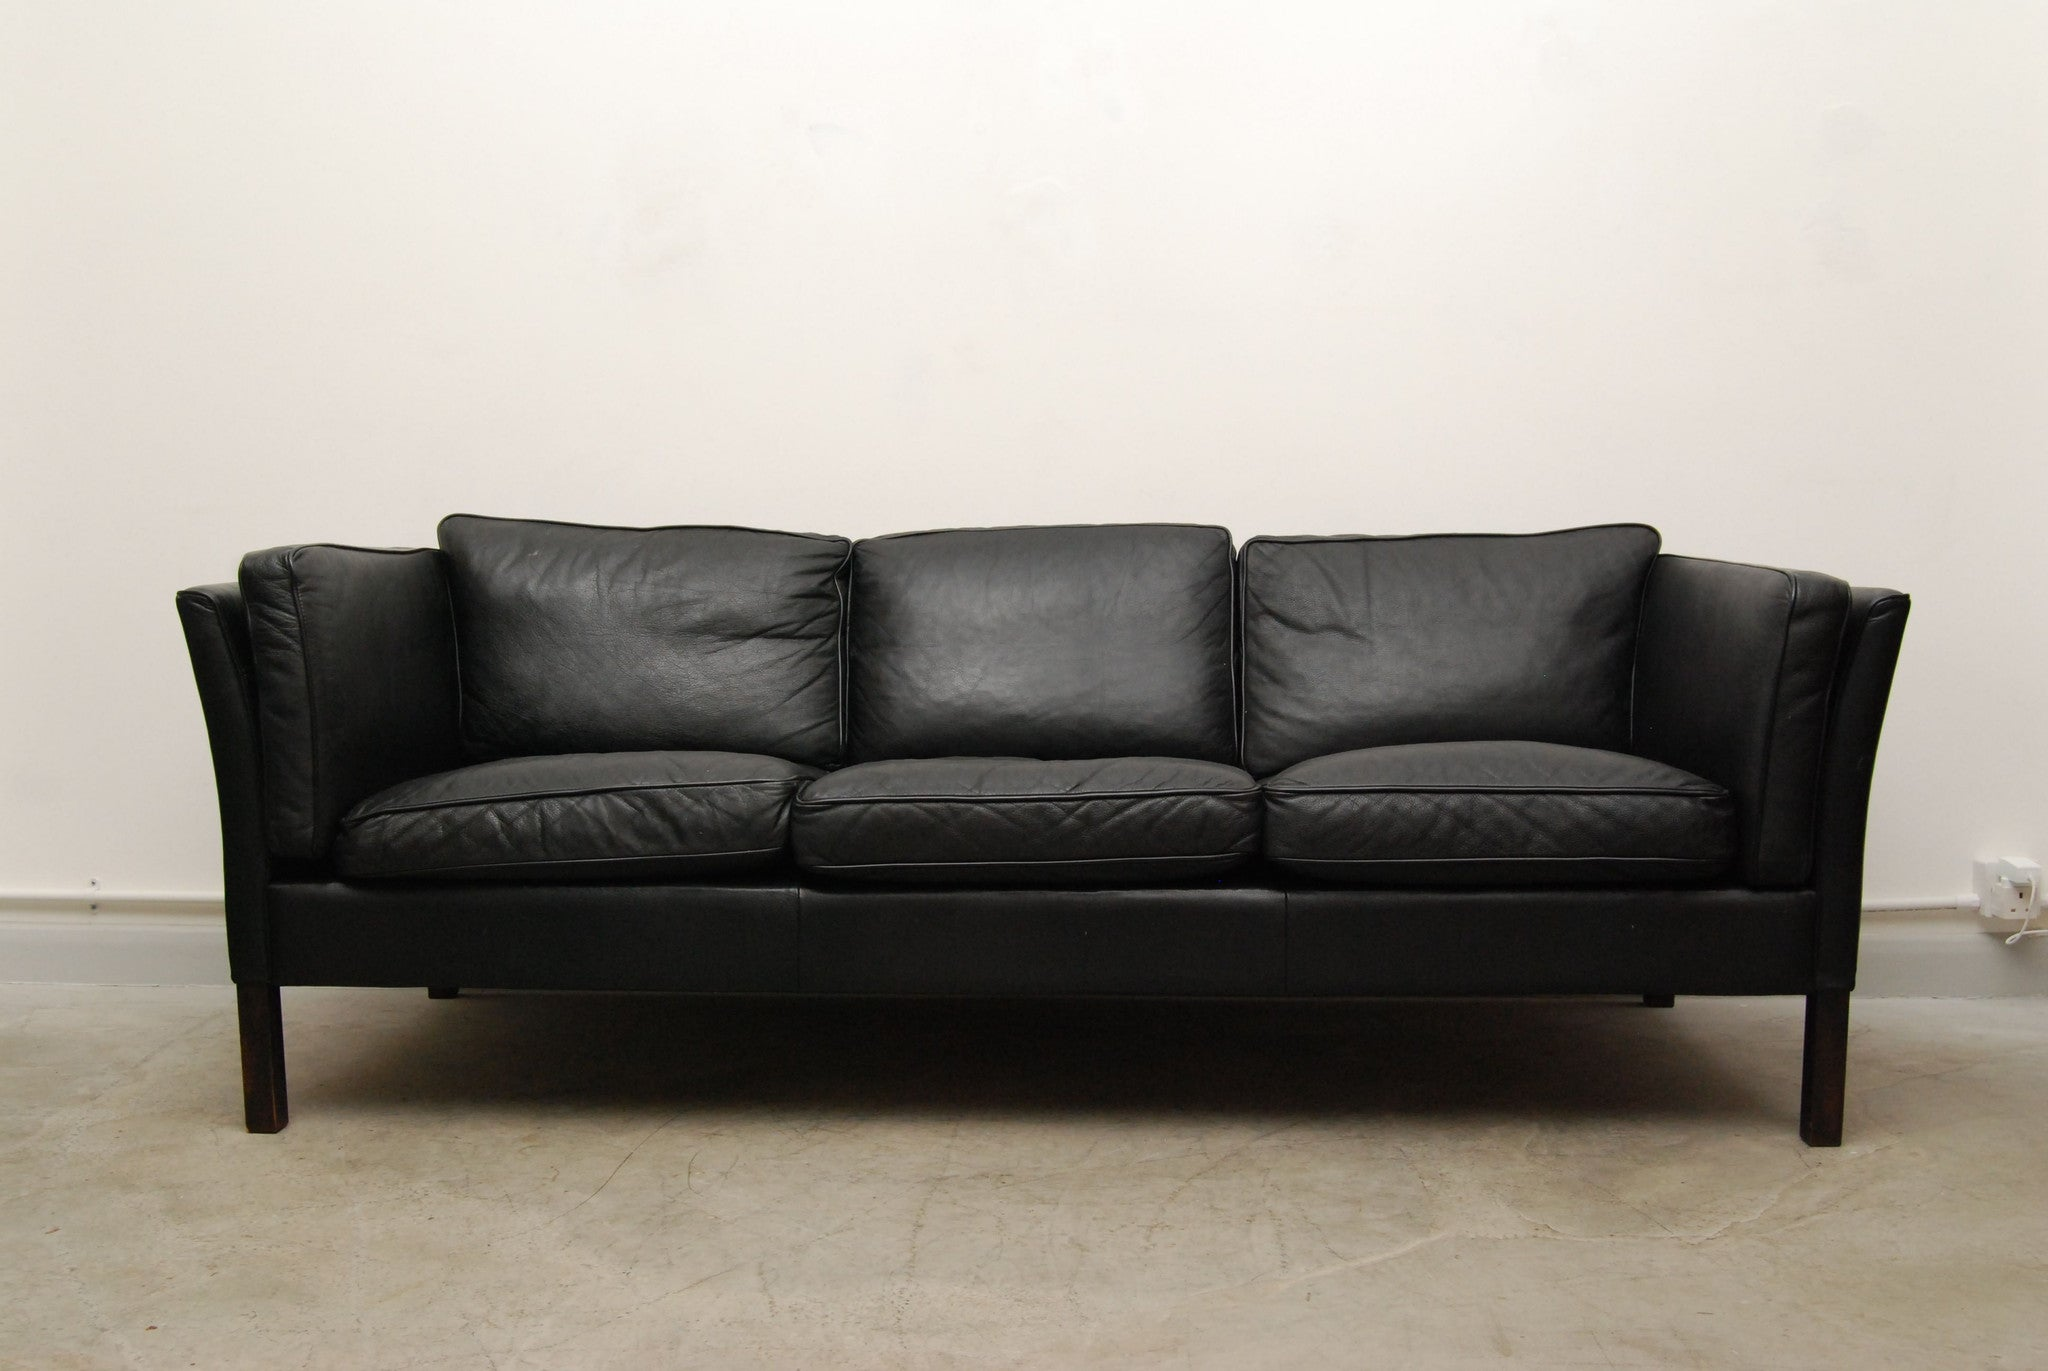 Three seat sofa by Stouby (black)